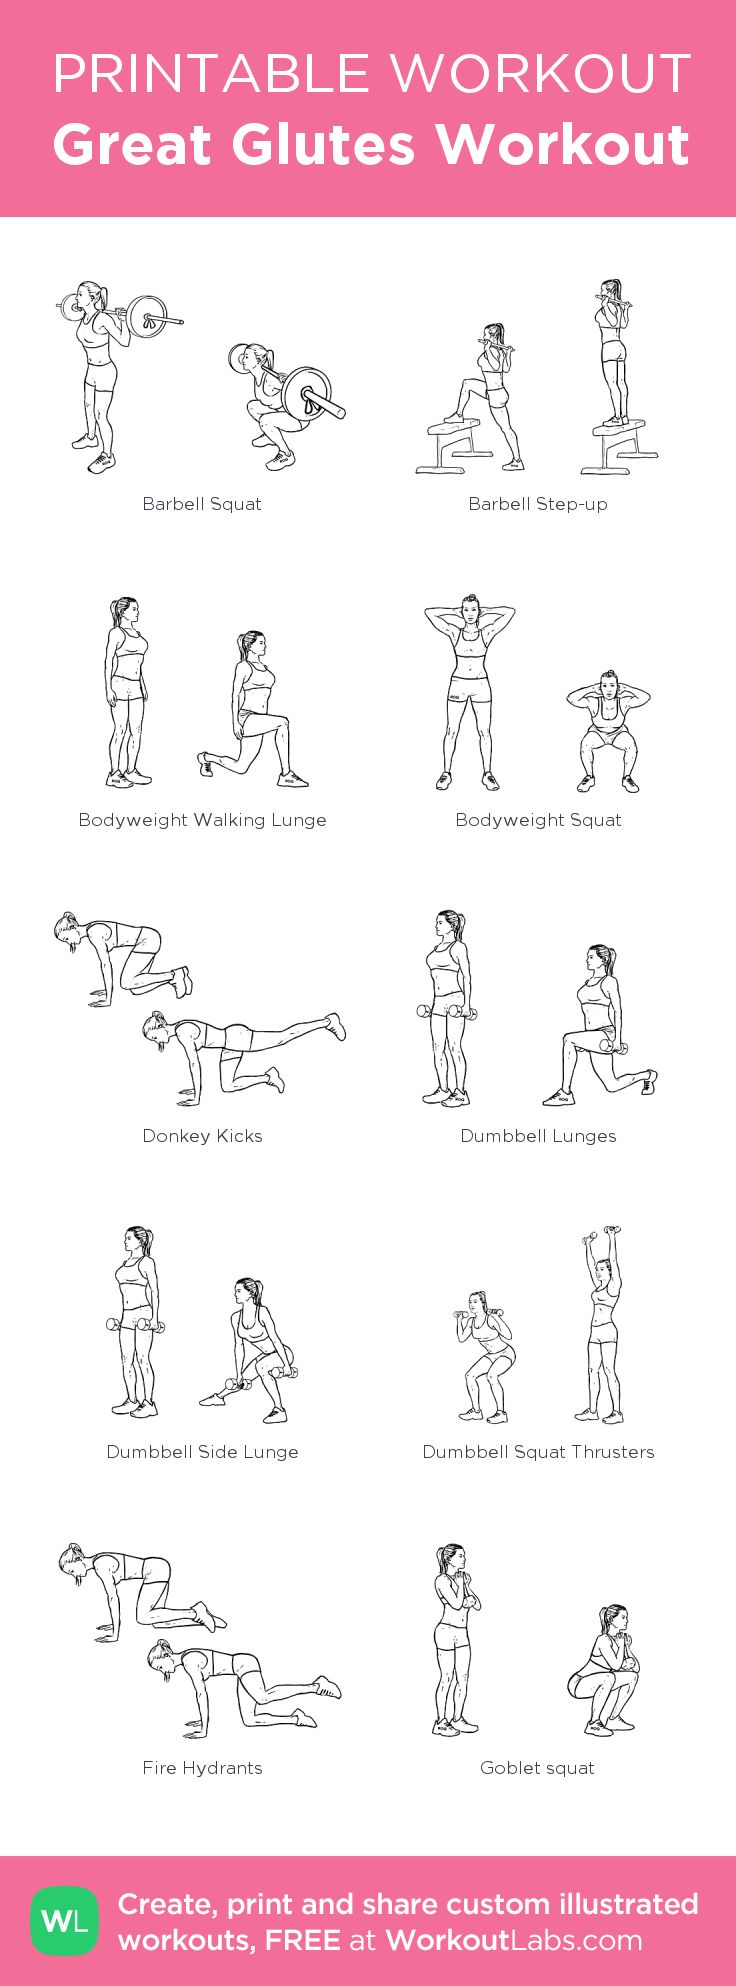 Great Glutes Workout